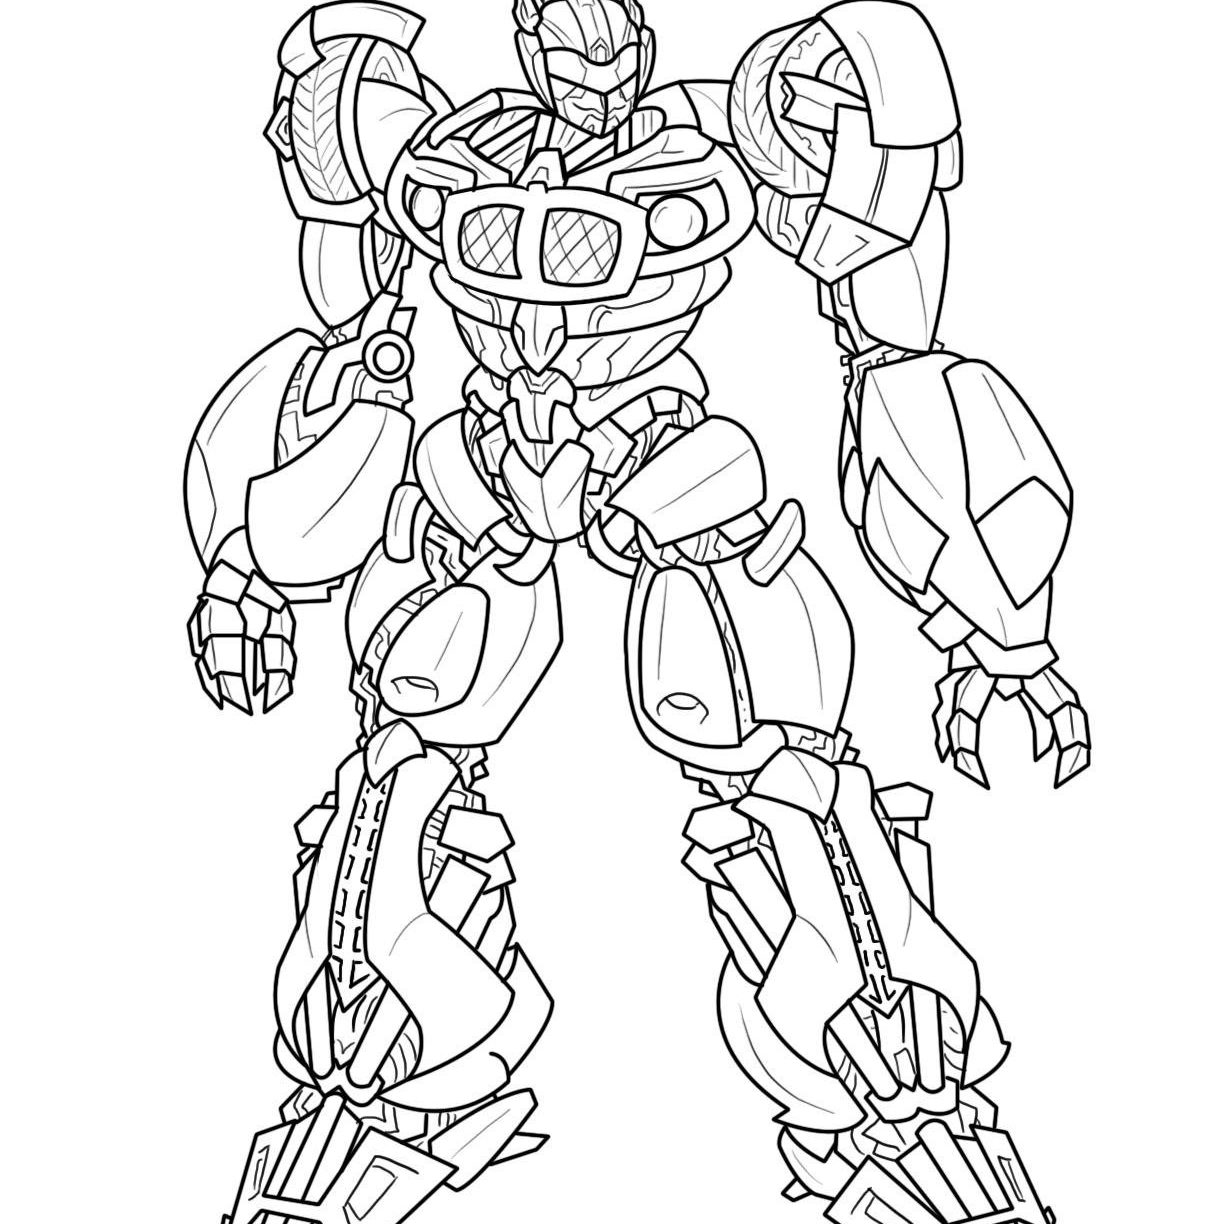 Transformers Dinobots Coloring Pages at GetDrawings.com.